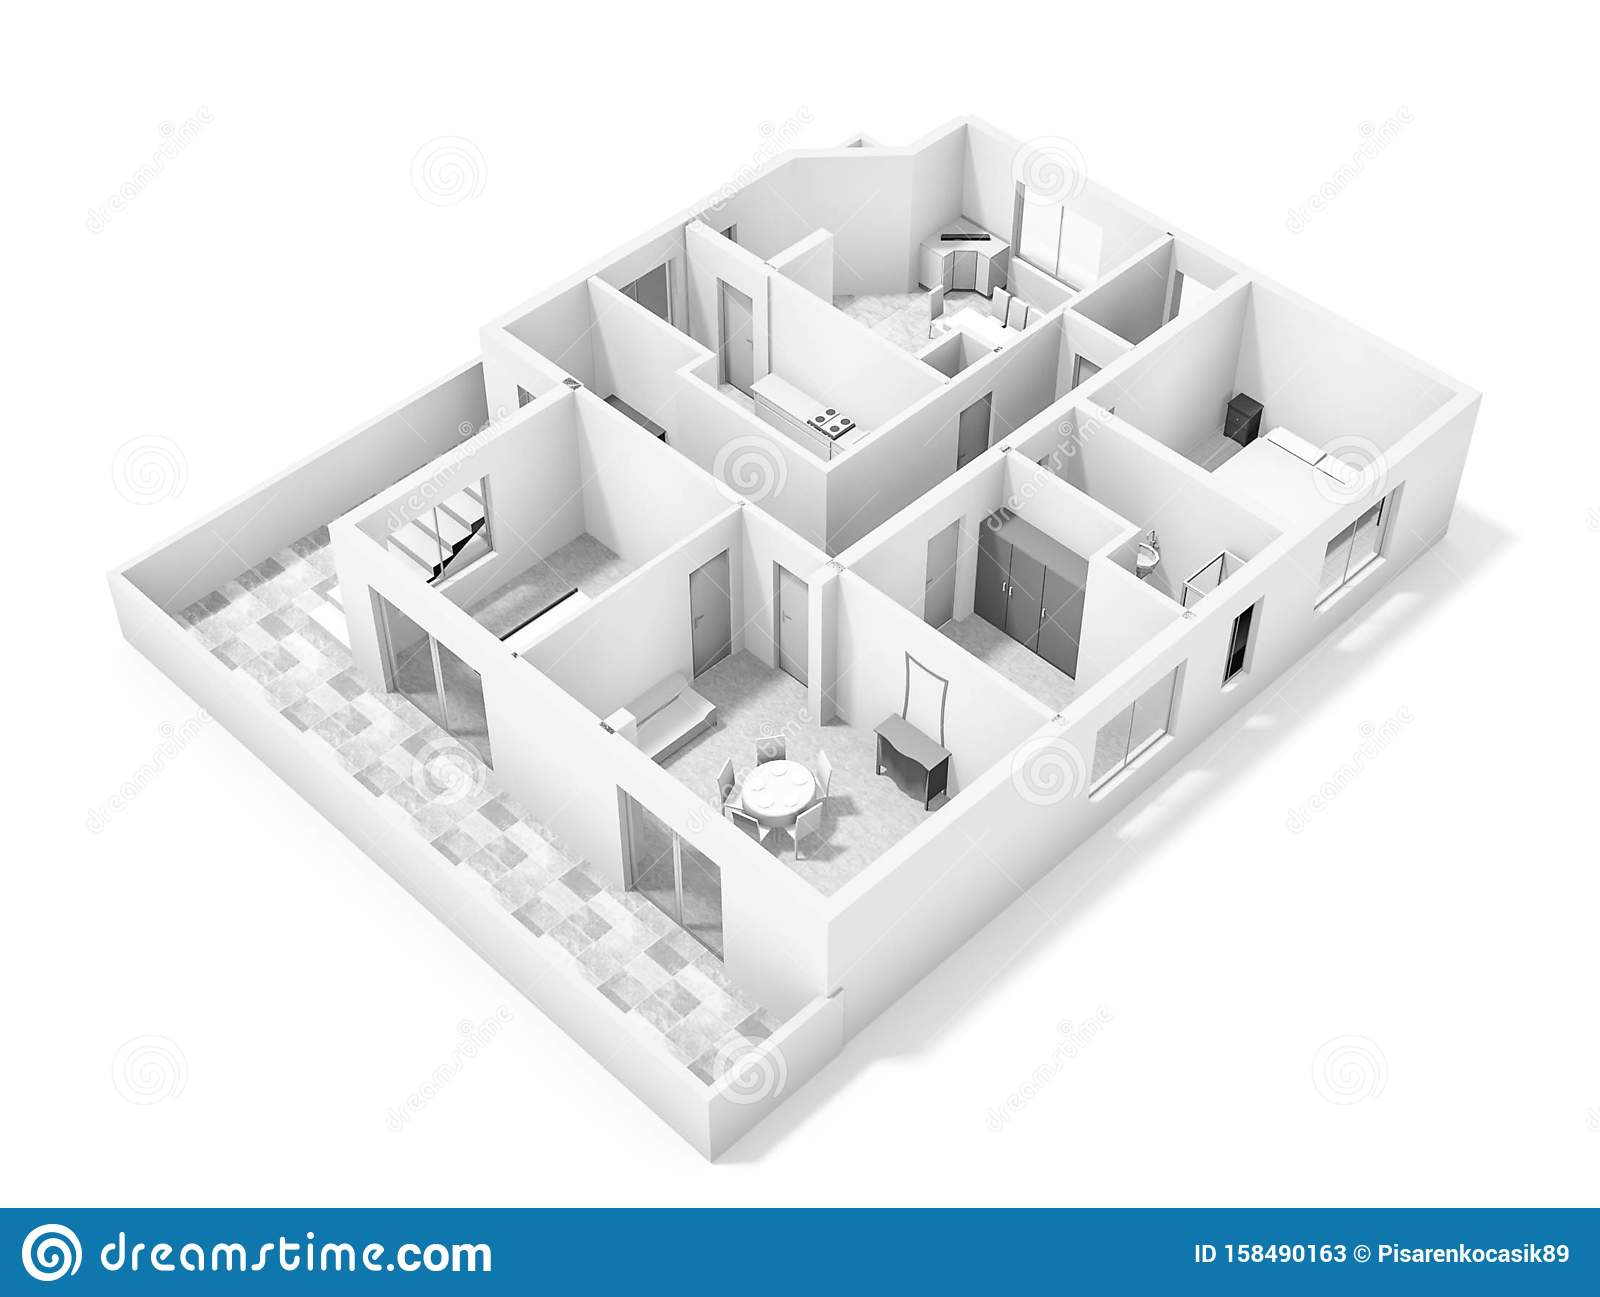 Floor Plan 3d With The Furniture Modern Plan Of The House Stock Illustration Illustration Of Abstract Furniture 158490163